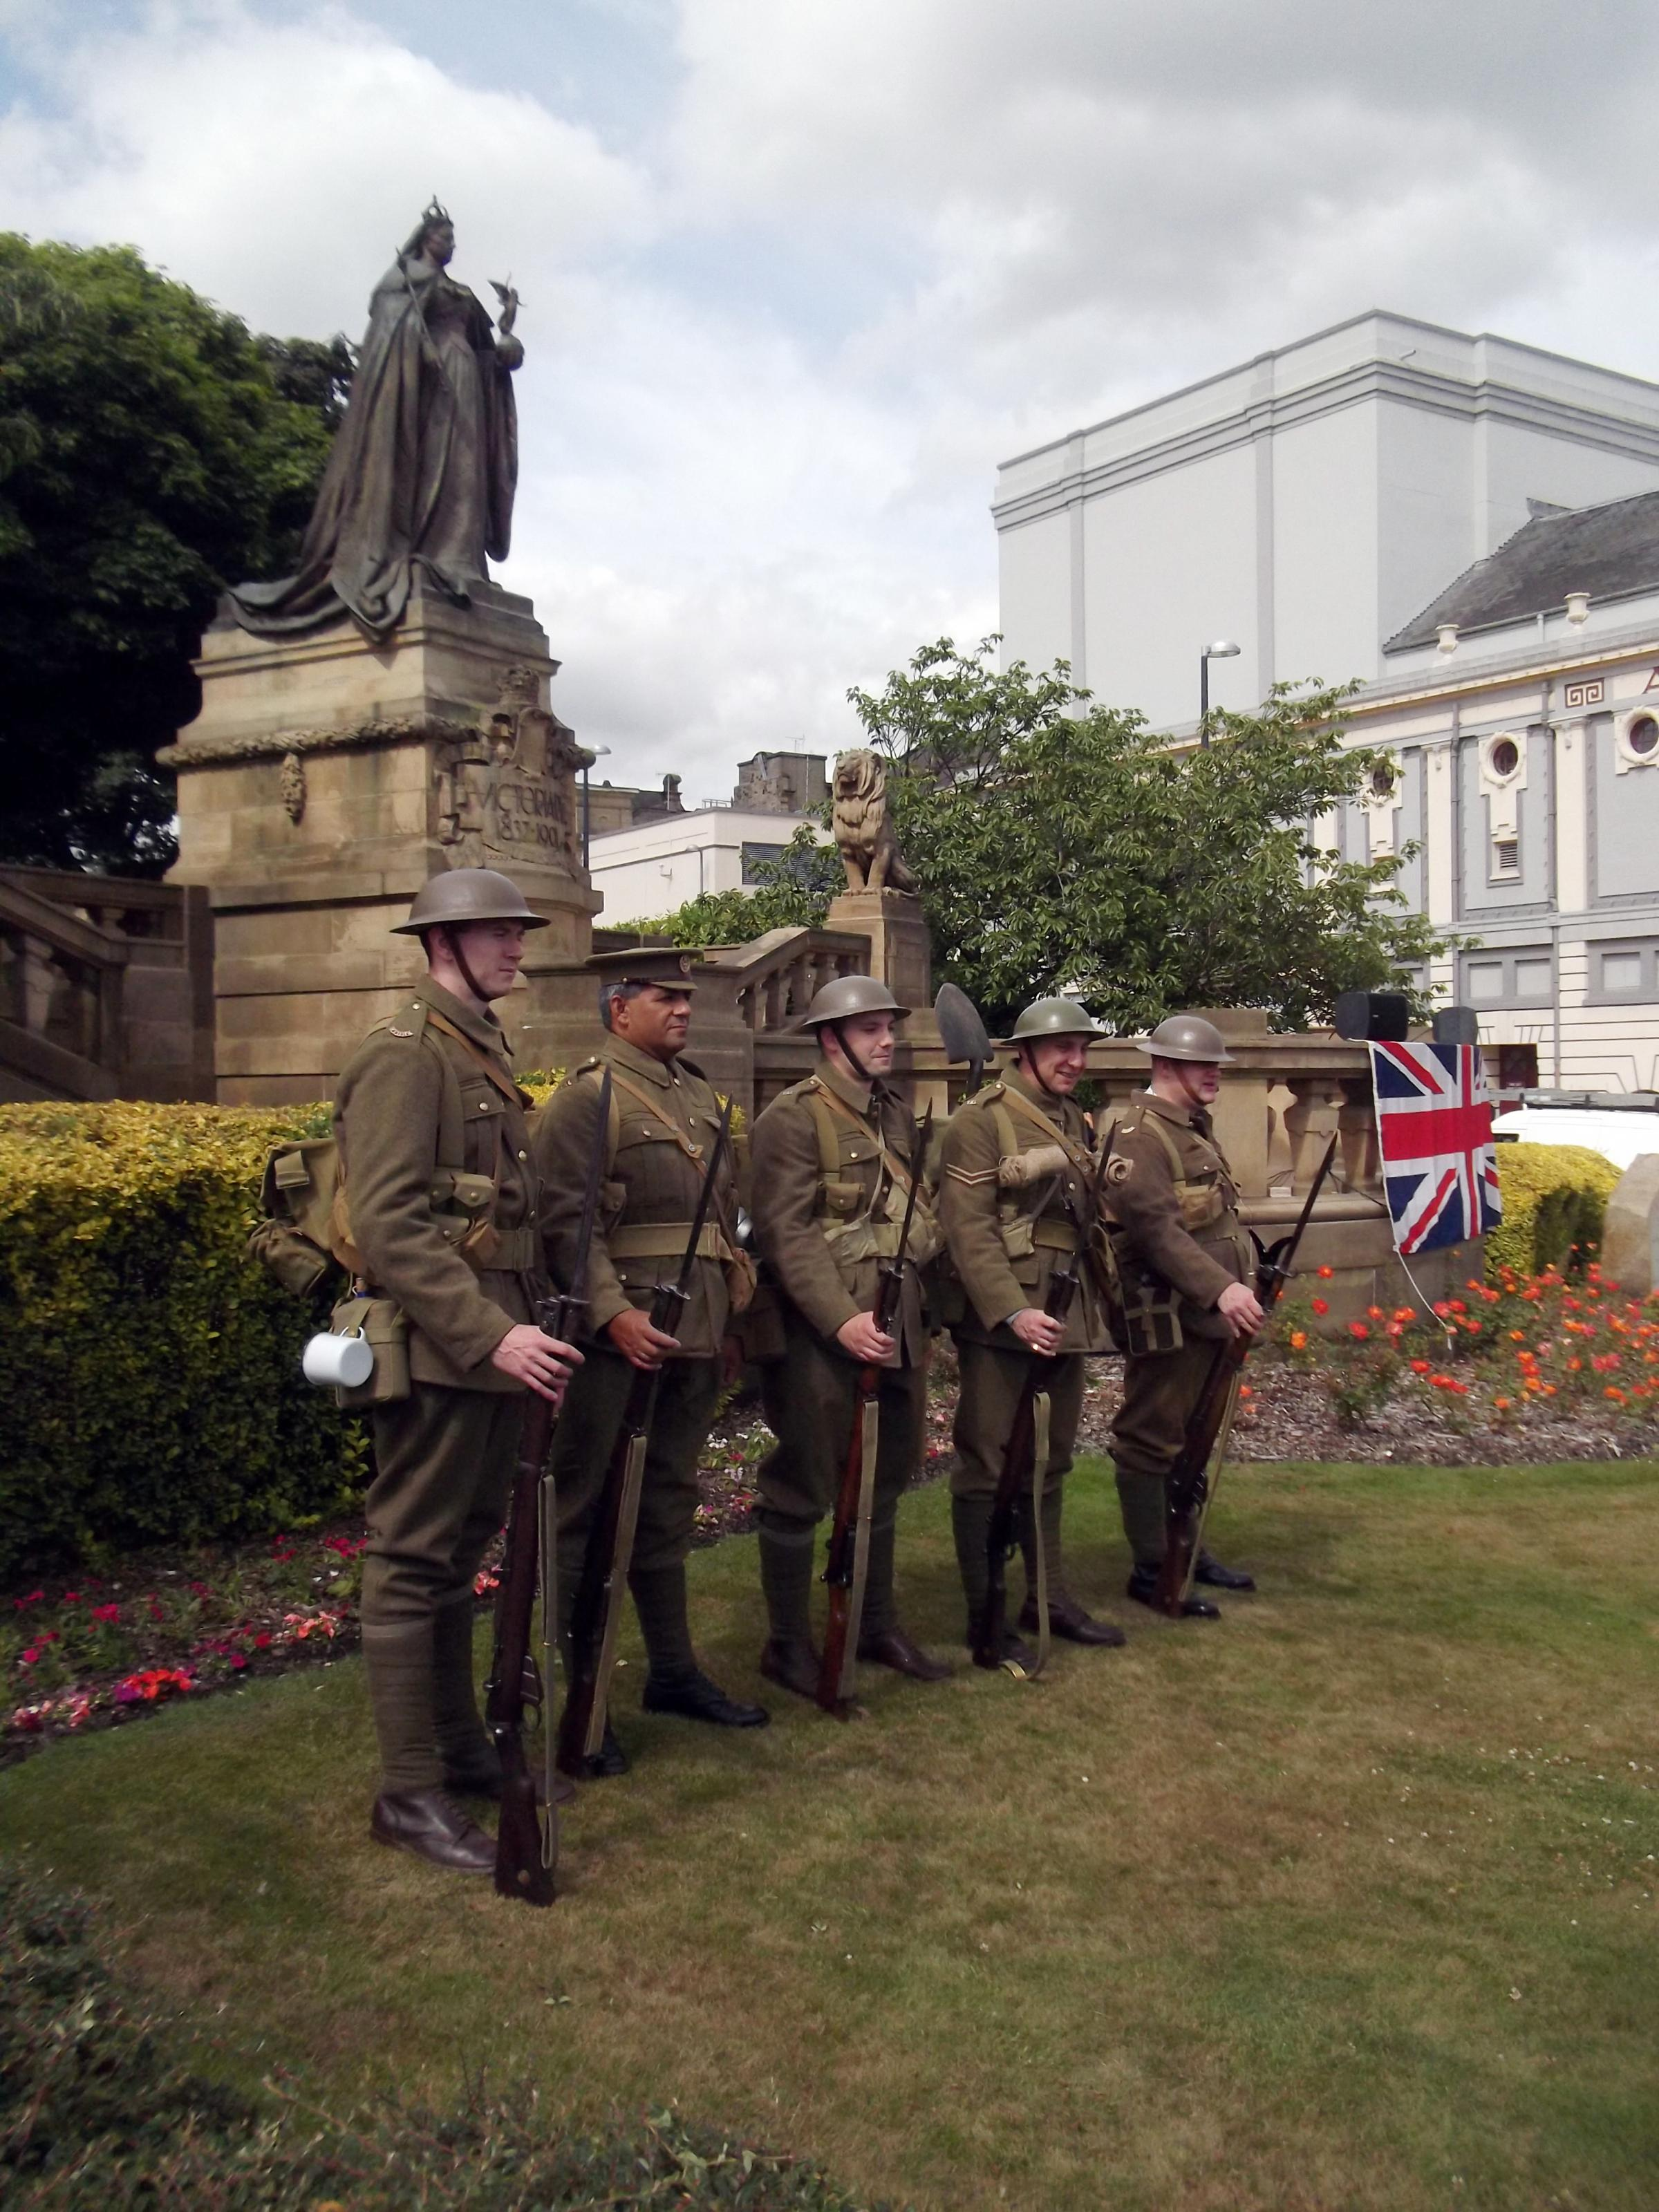 Bradford Pals re-enactment group at the Cenotaph during the 95th Somme Anniversary Commemoration of the sacrifice made by Bradford Pals